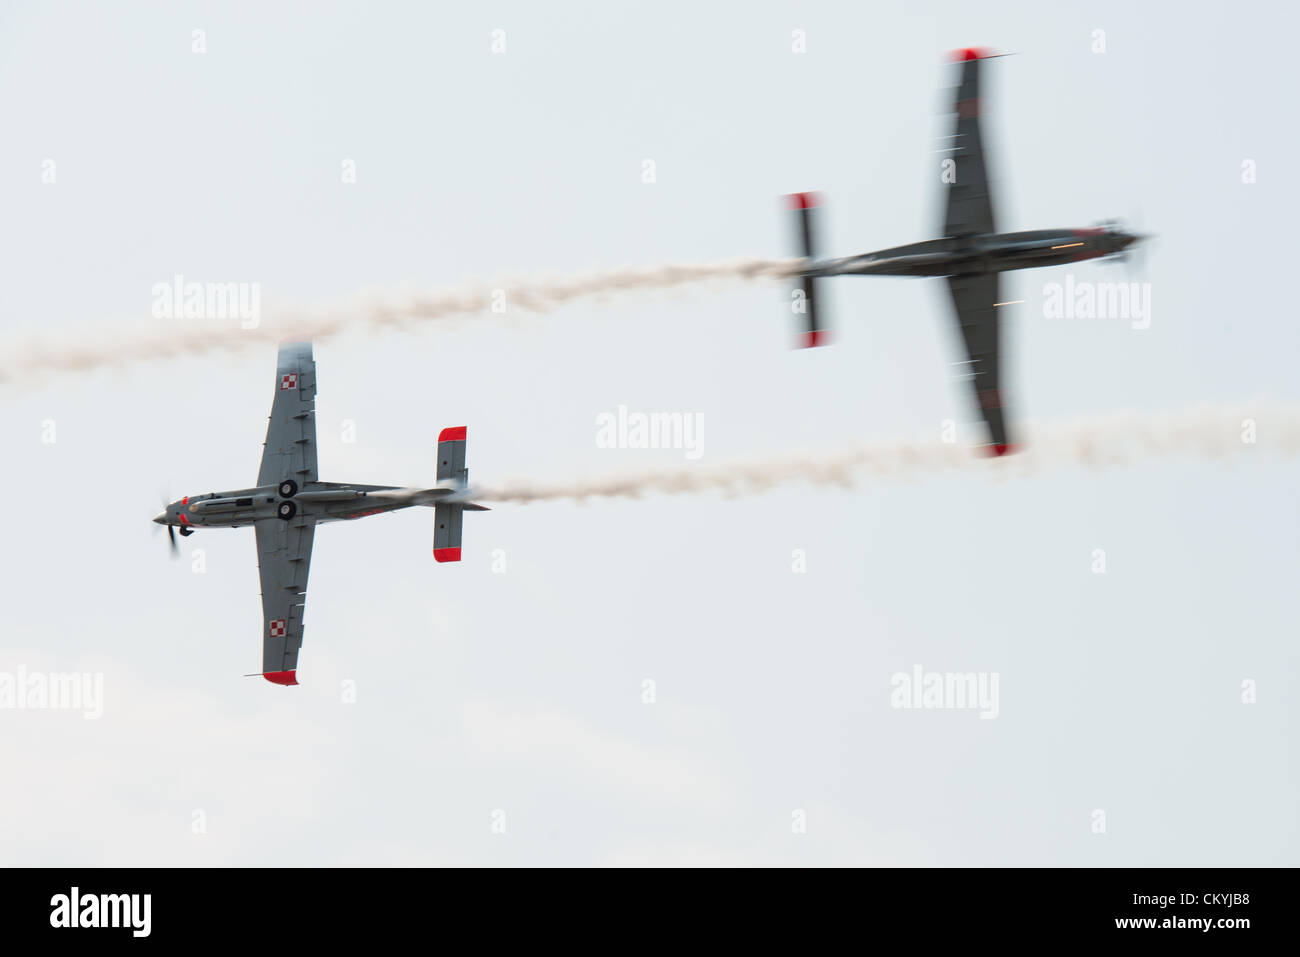 SLIAC, SLOVAKIA - SEPTEMBER 2: airplanes of Orlik aerobatic team are crossing at close distance at SIAF on September - Stock Image